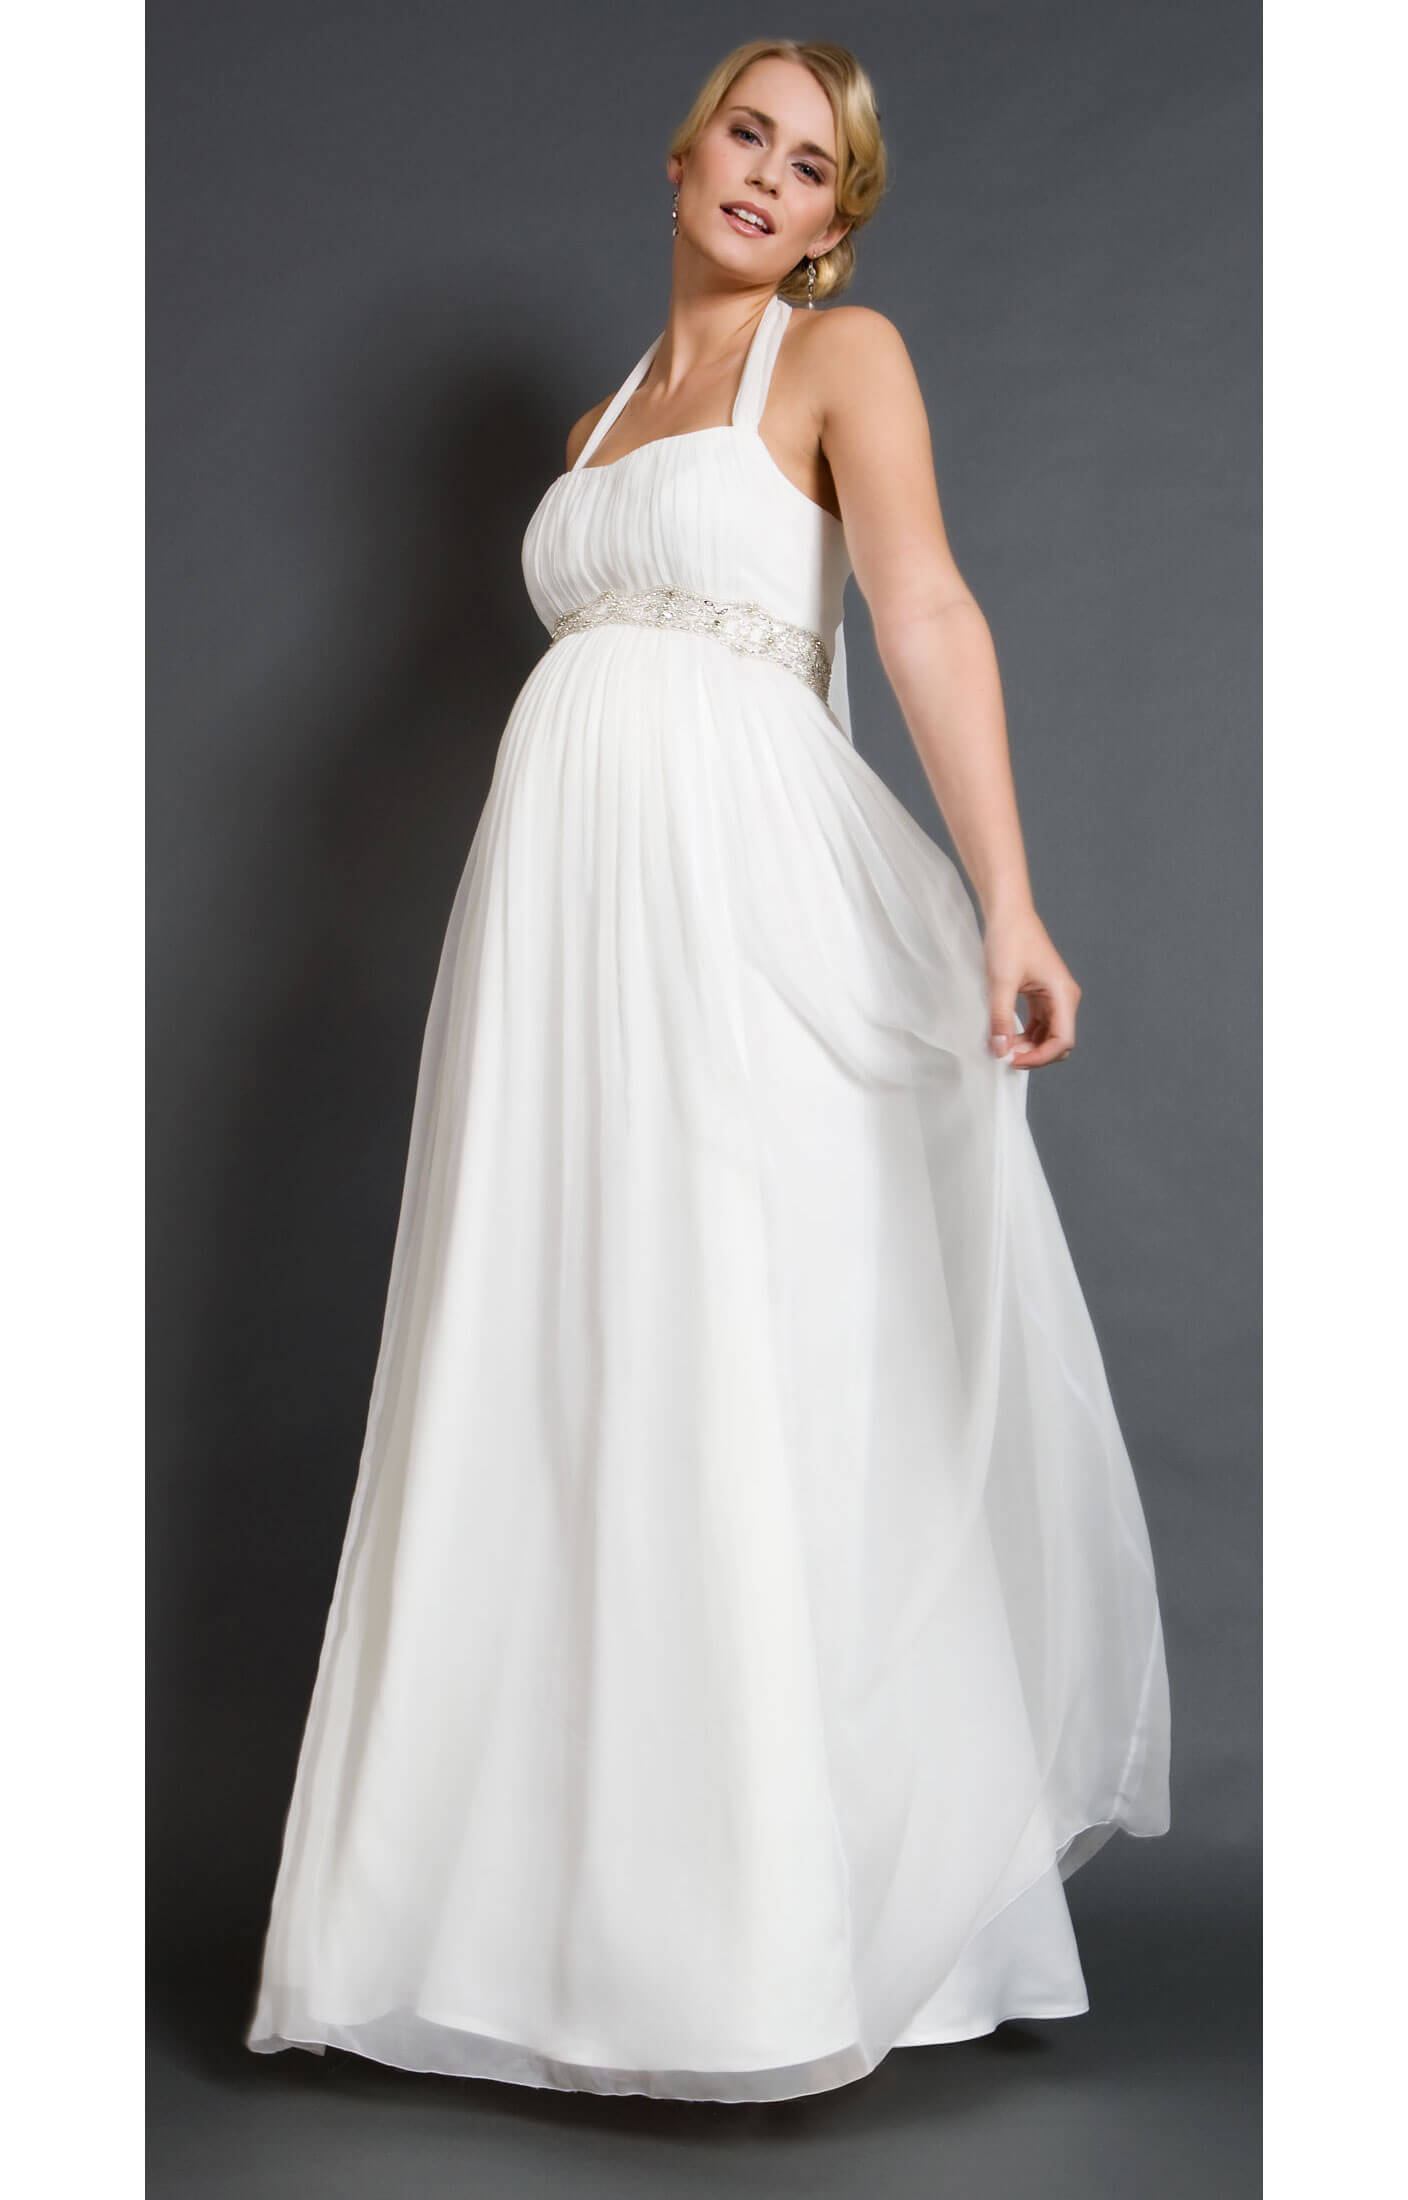 Alya Silk Maternity Bridal Gown (Long) - Maternity Wedding Dresses ...